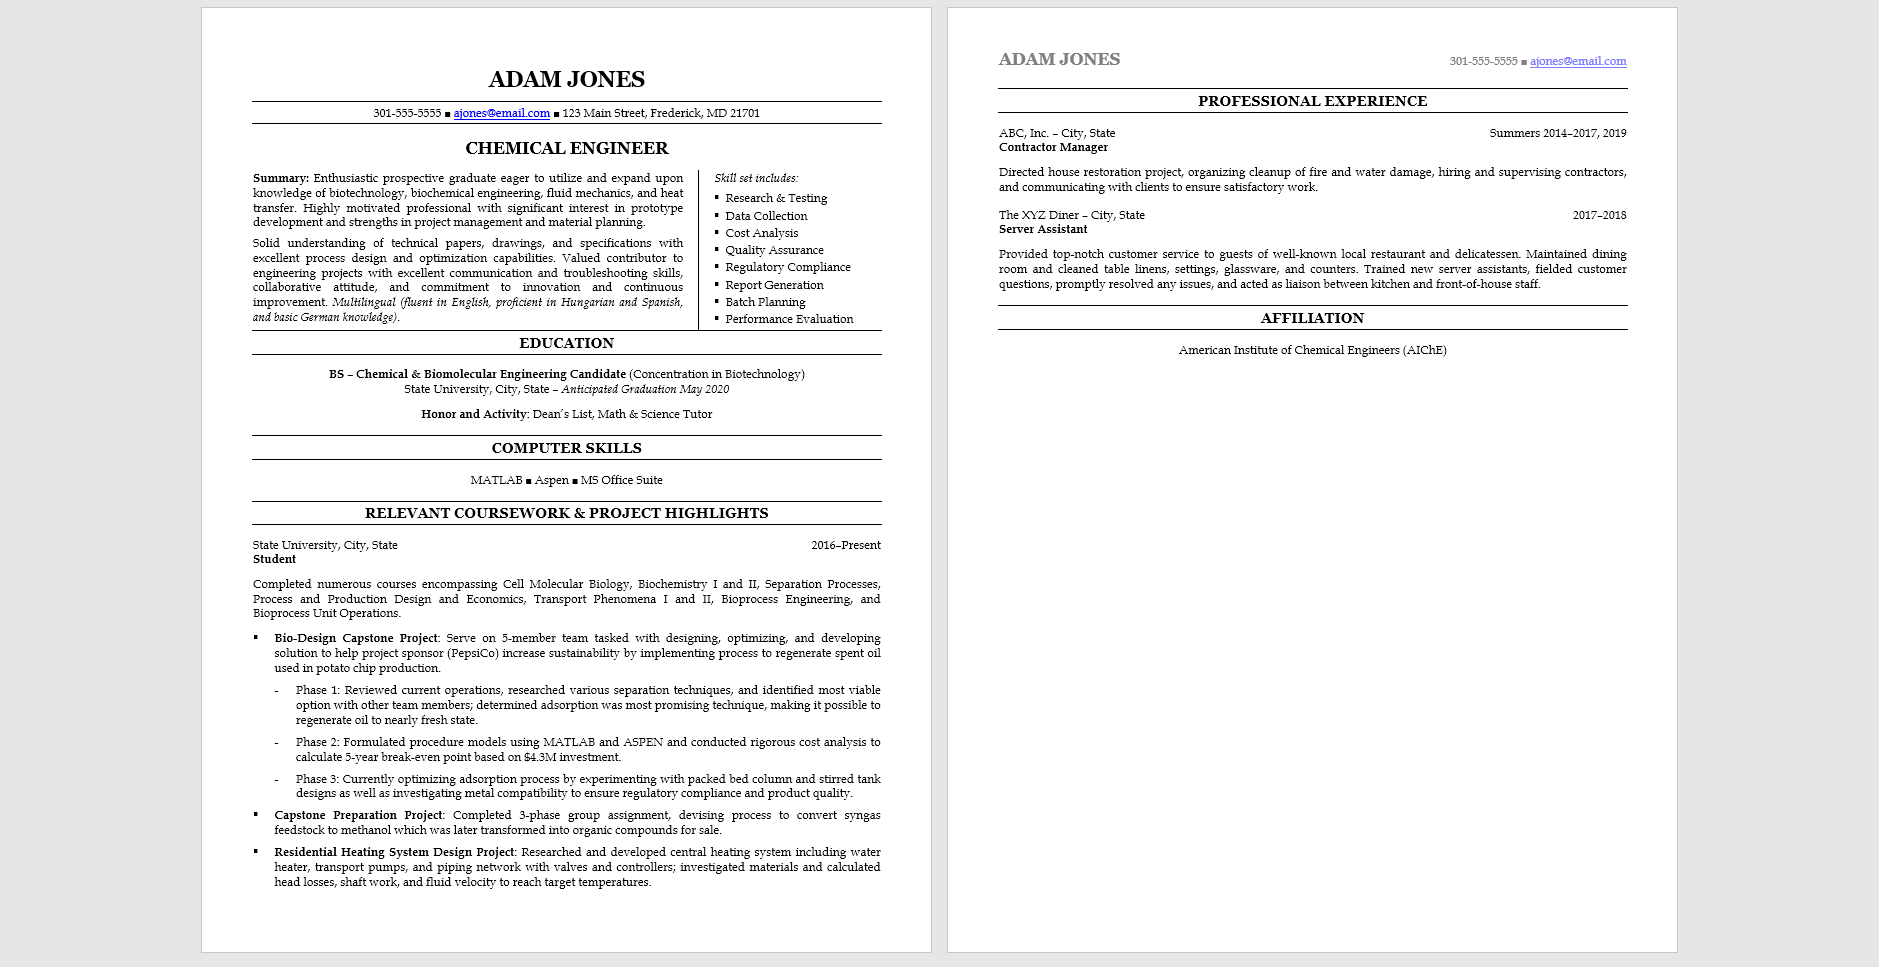 Sample resume focused on school projects